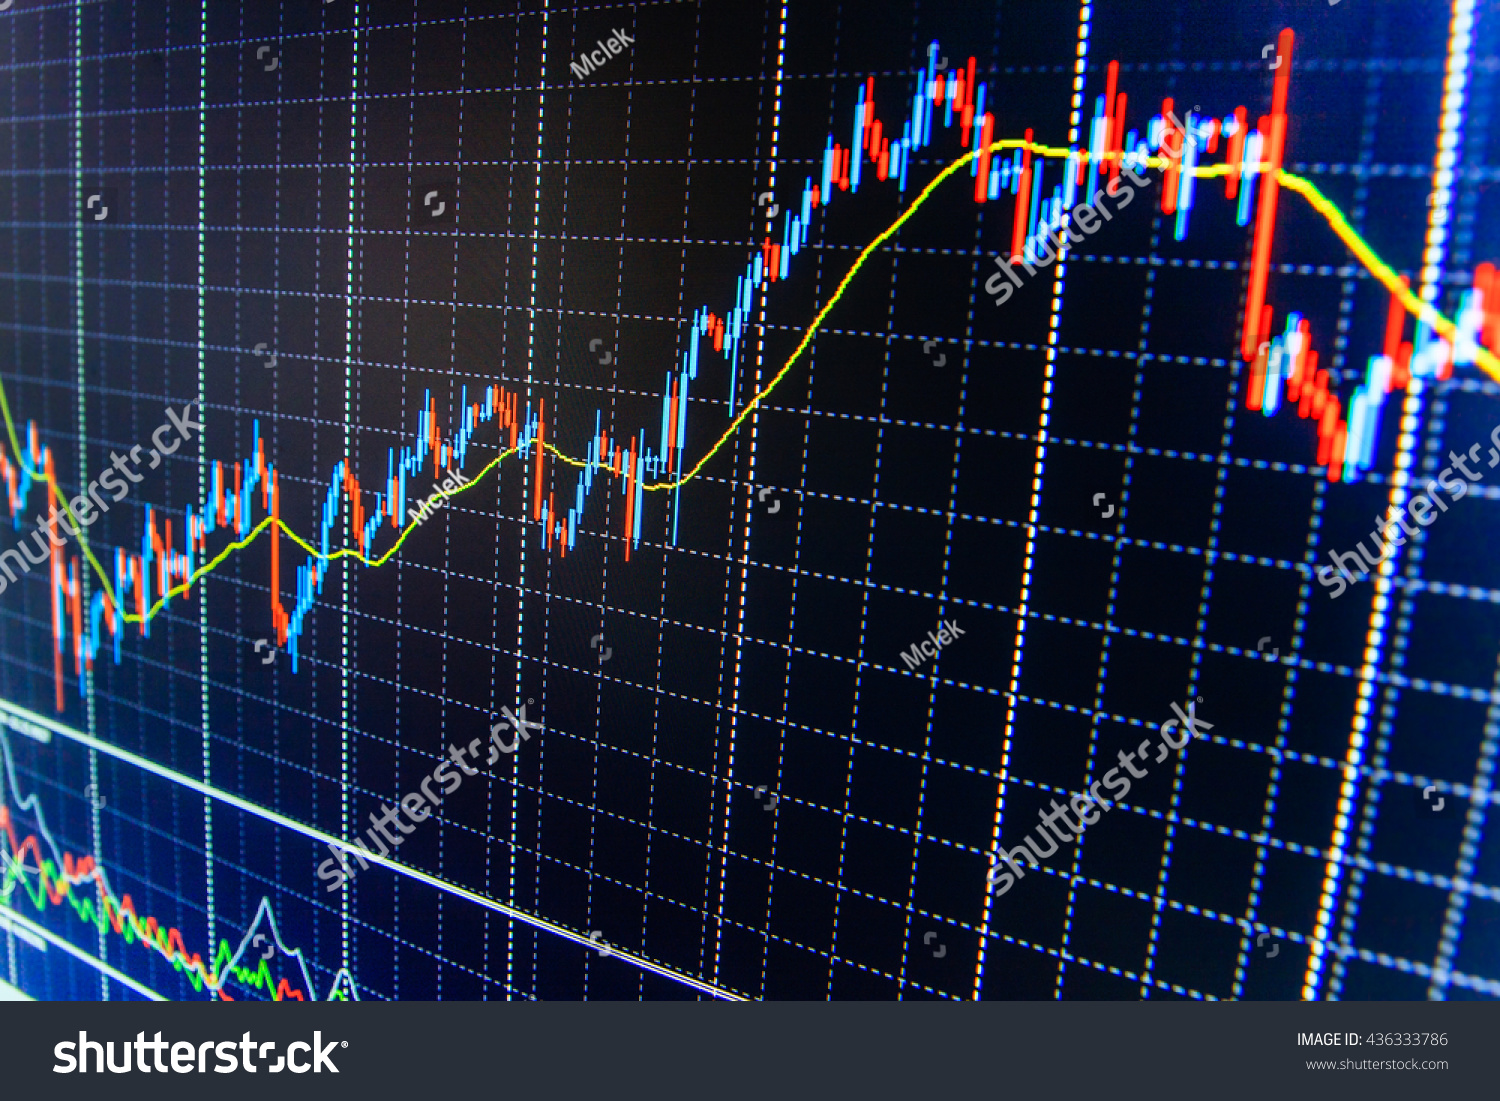 Stock trade live blue screen finance stock photo 436333786